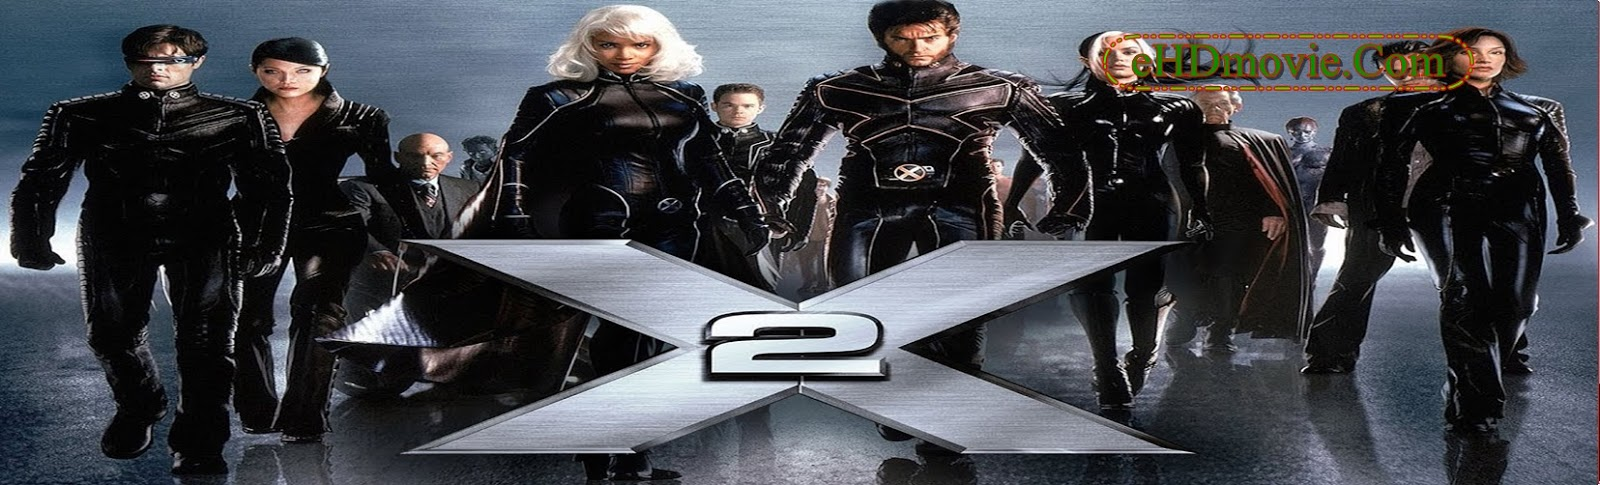 X-Men 2 United 2003 Full Movie Dual Audio [Hindi – English] 1080p - 720p - 480p ORG BRRip 400MB - 750MB - 2.7GB ESubs Free Download